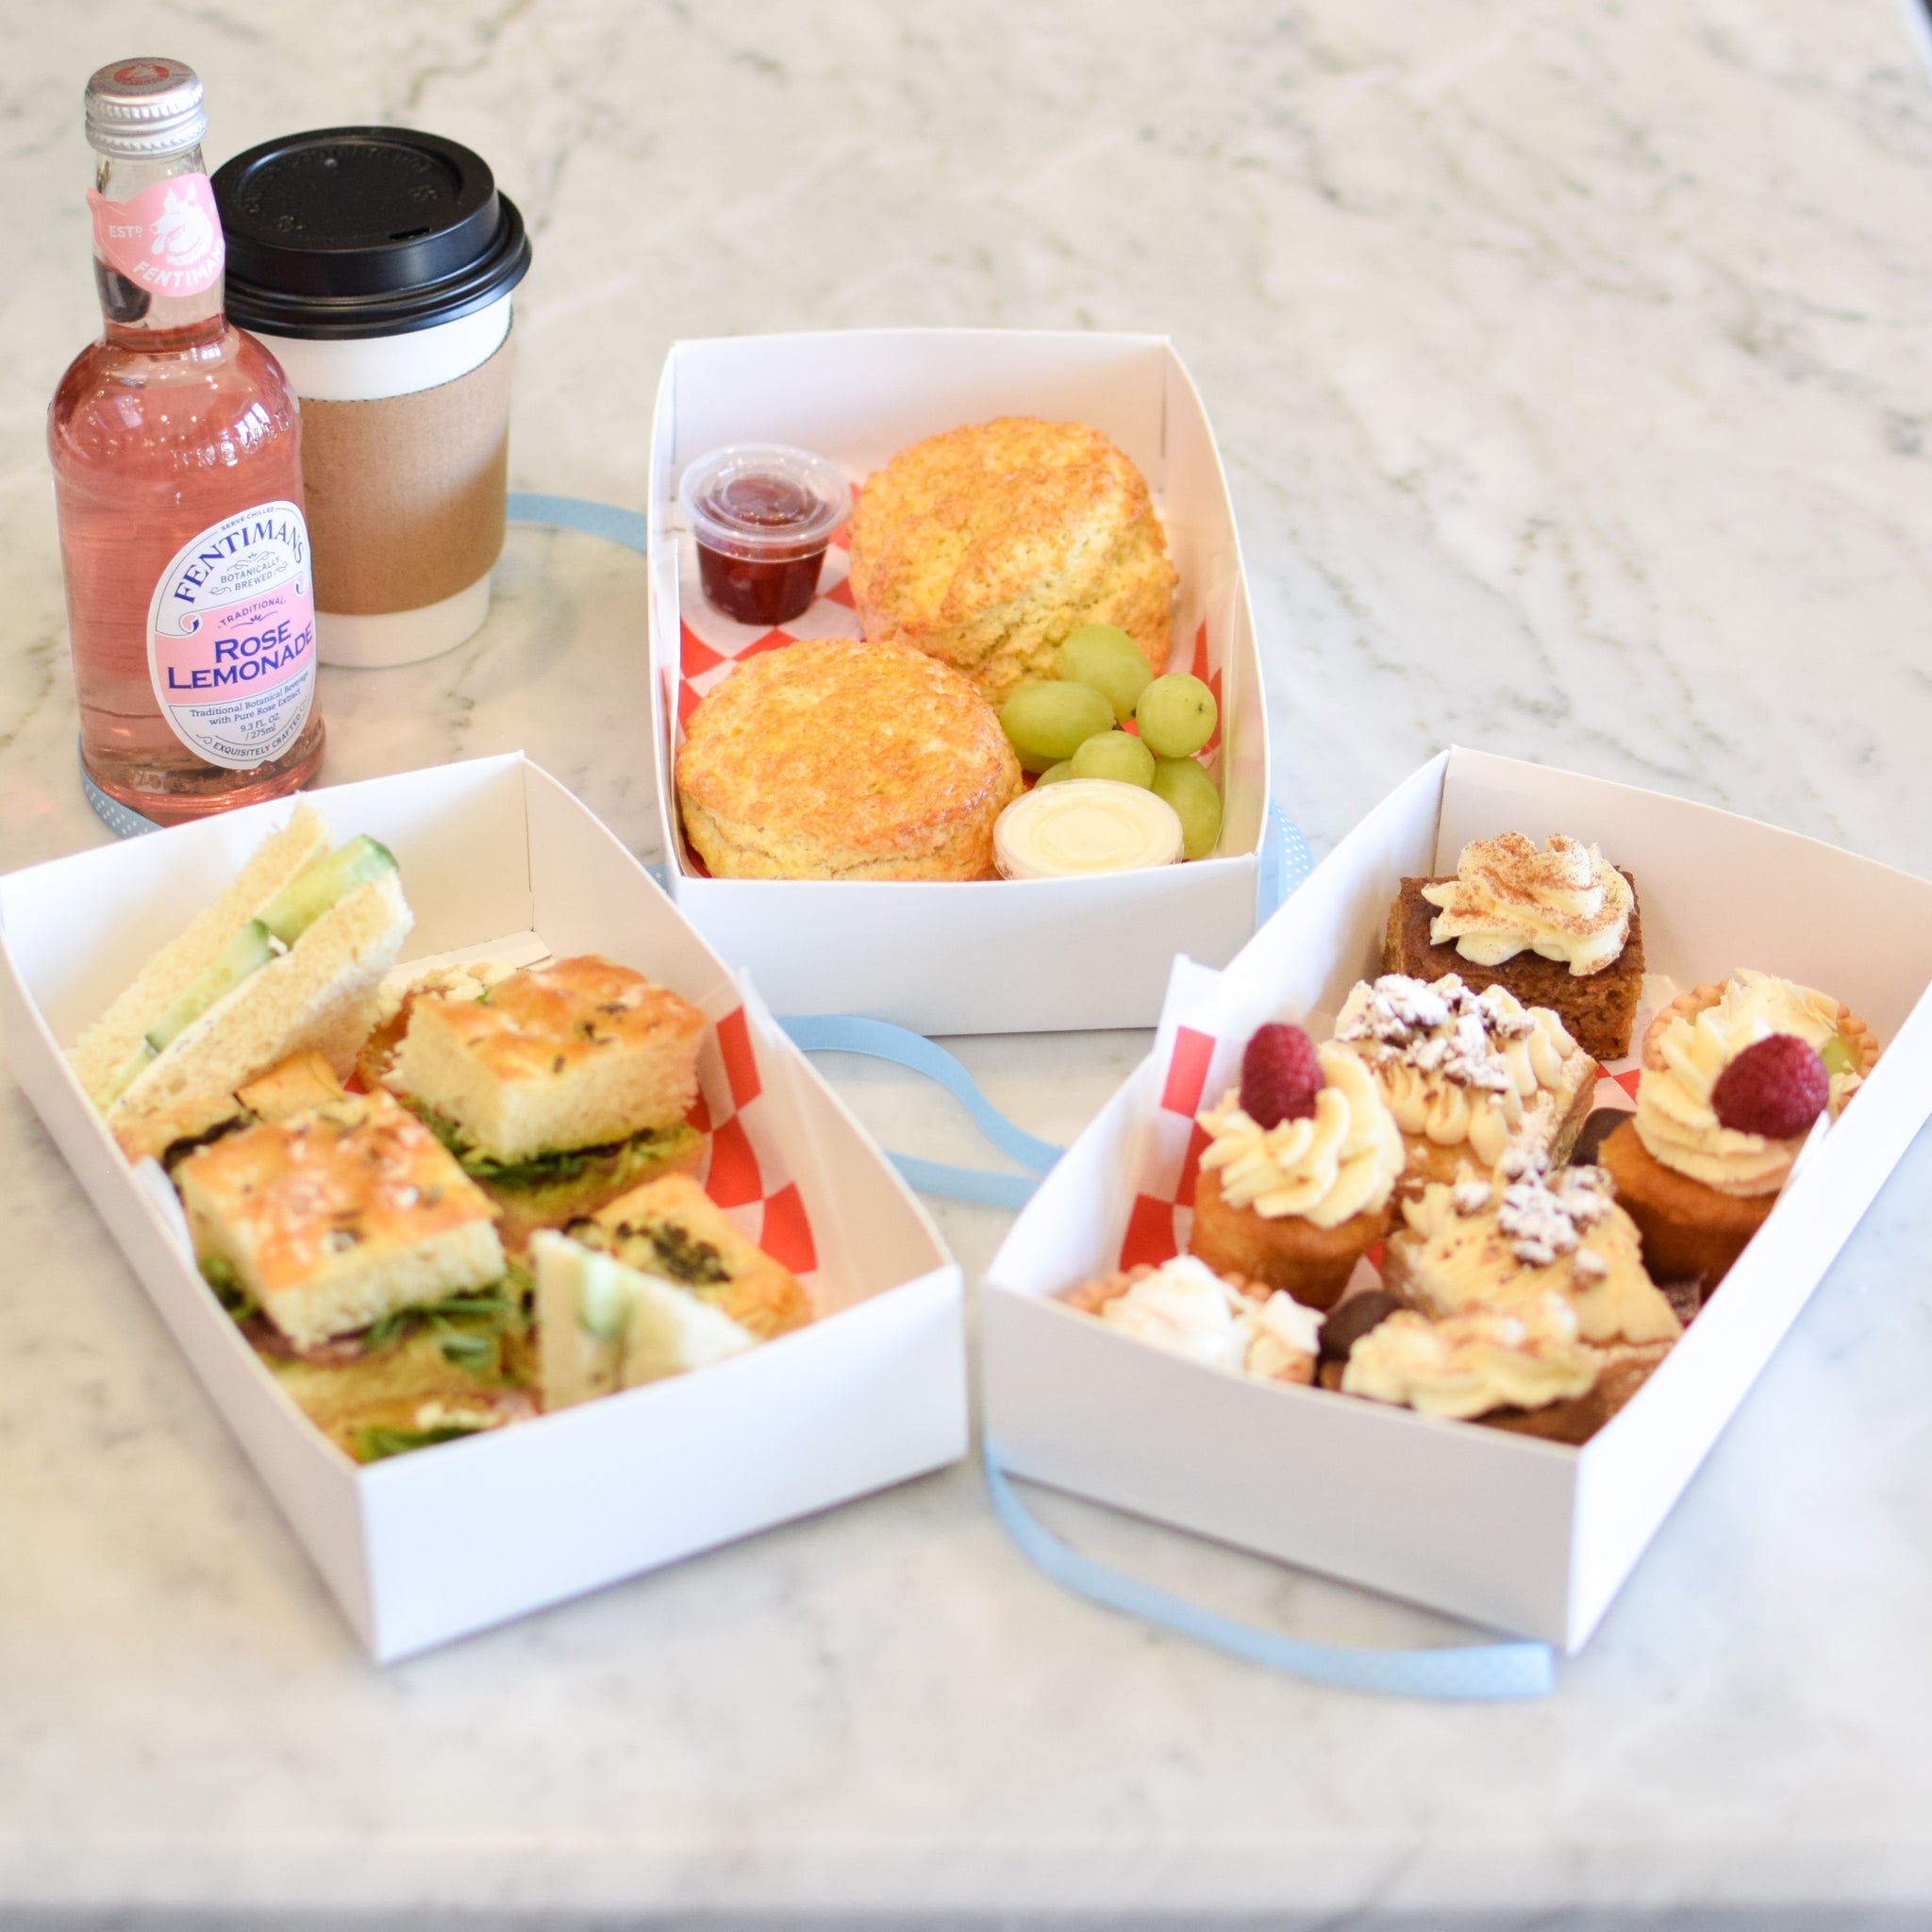 Afternoon Tea to Go! In-store/curbside pick-up only (please allow at least 30 minutes)